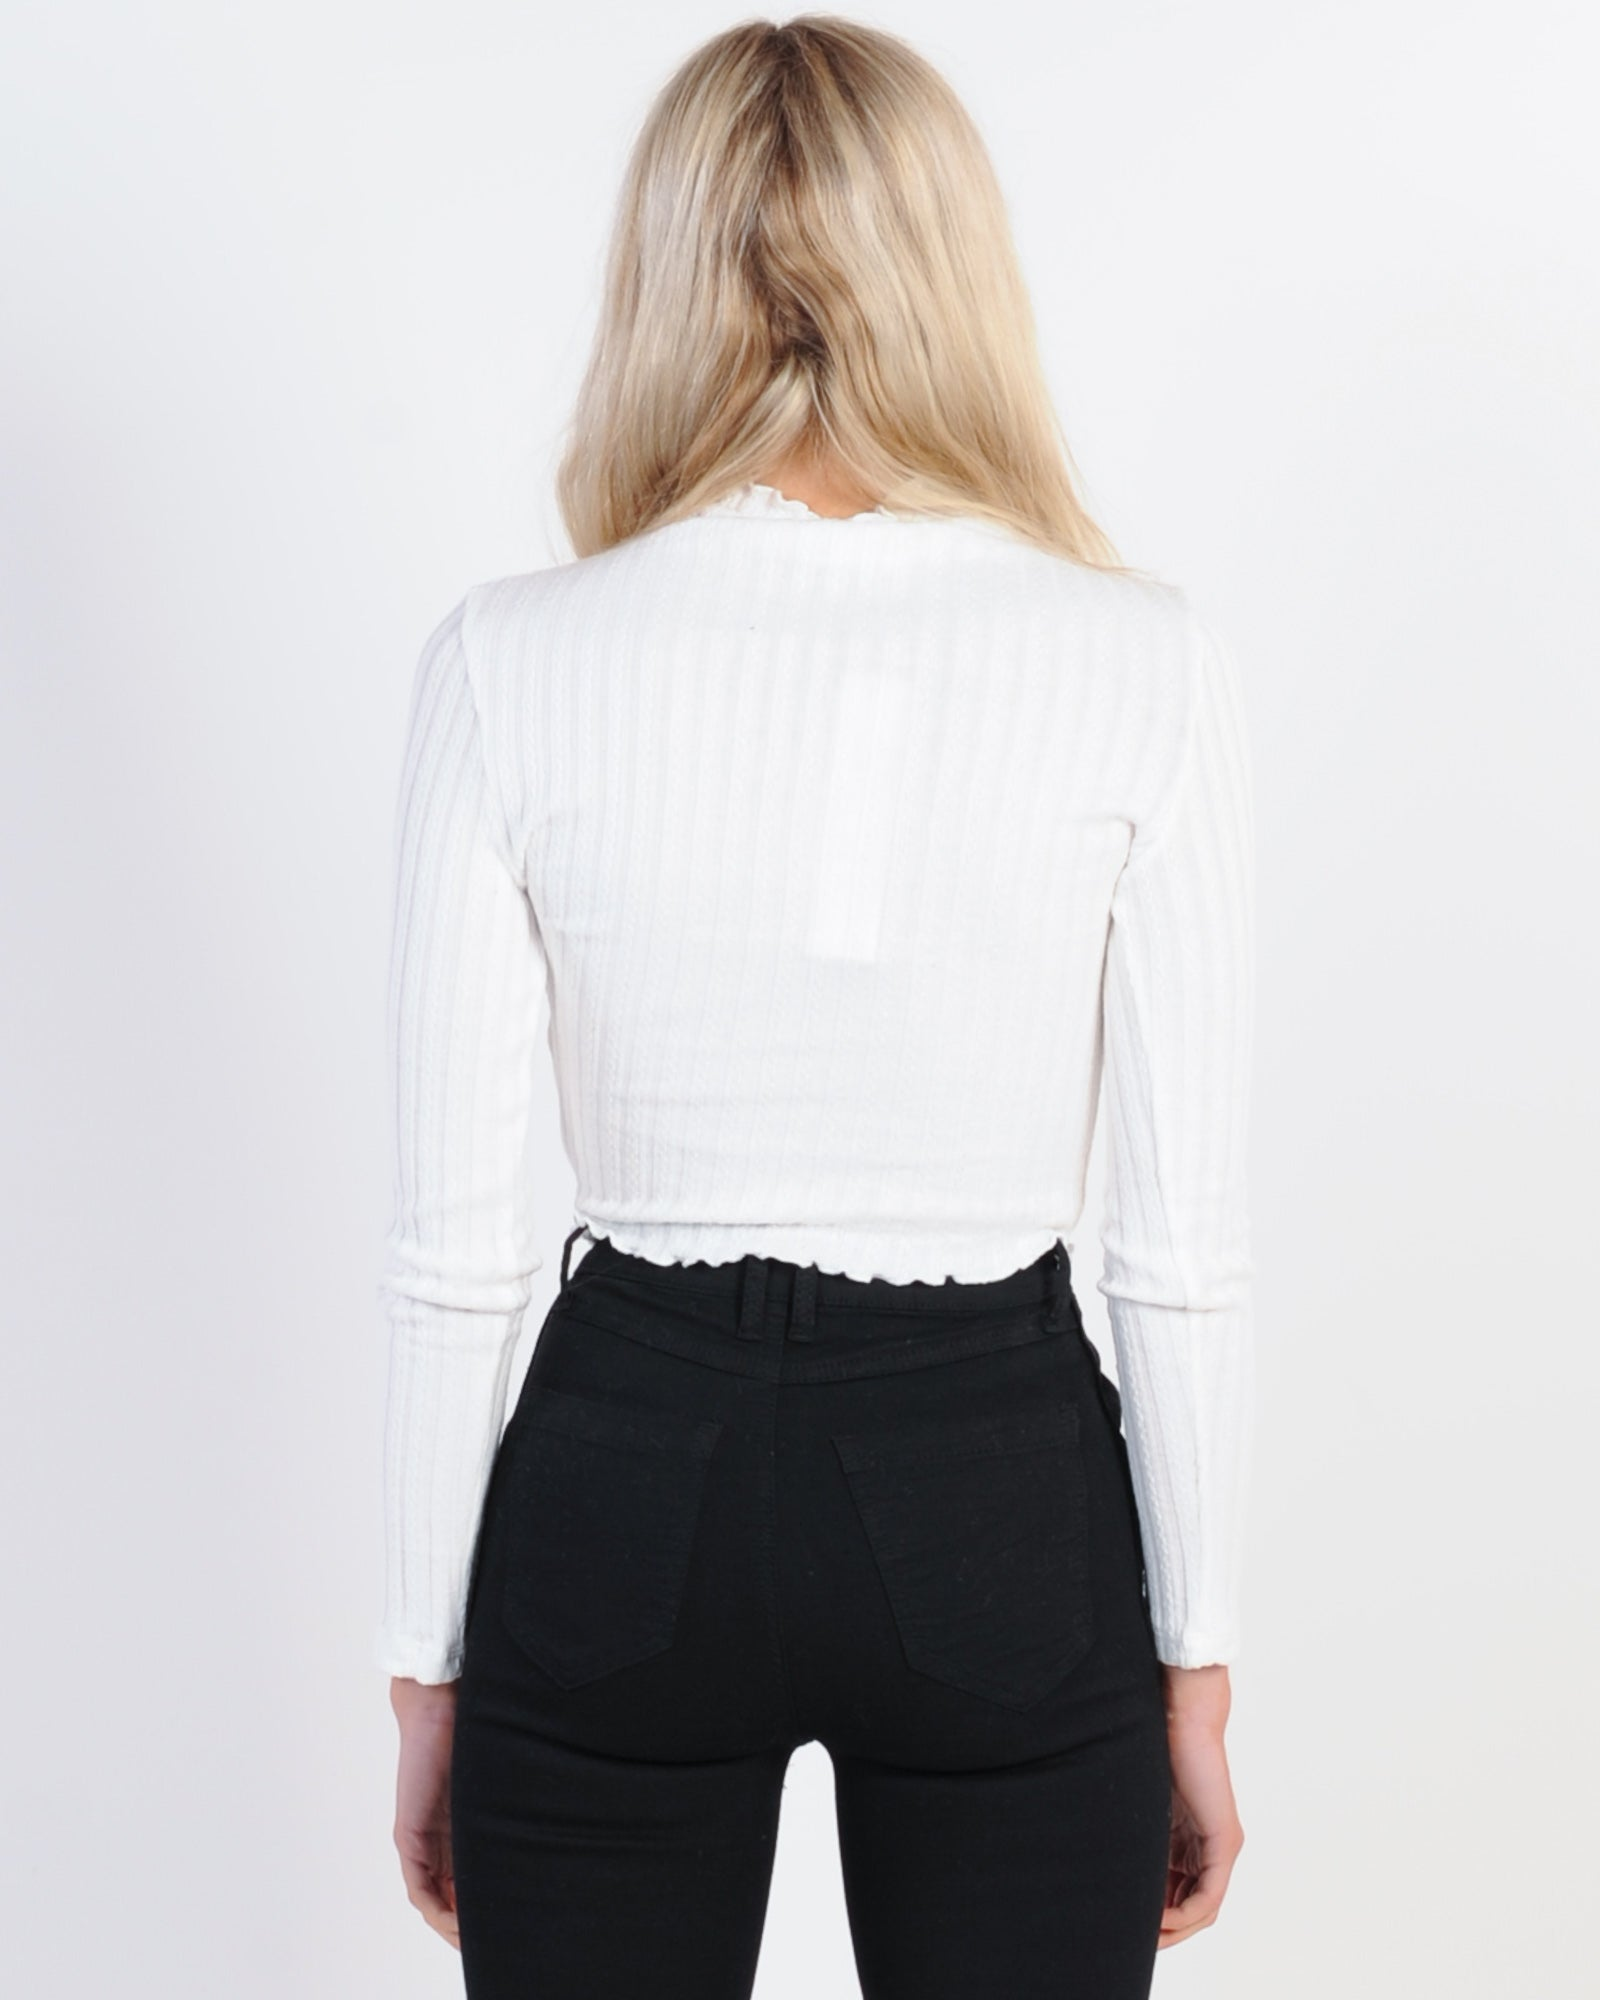 Private Party Top - White